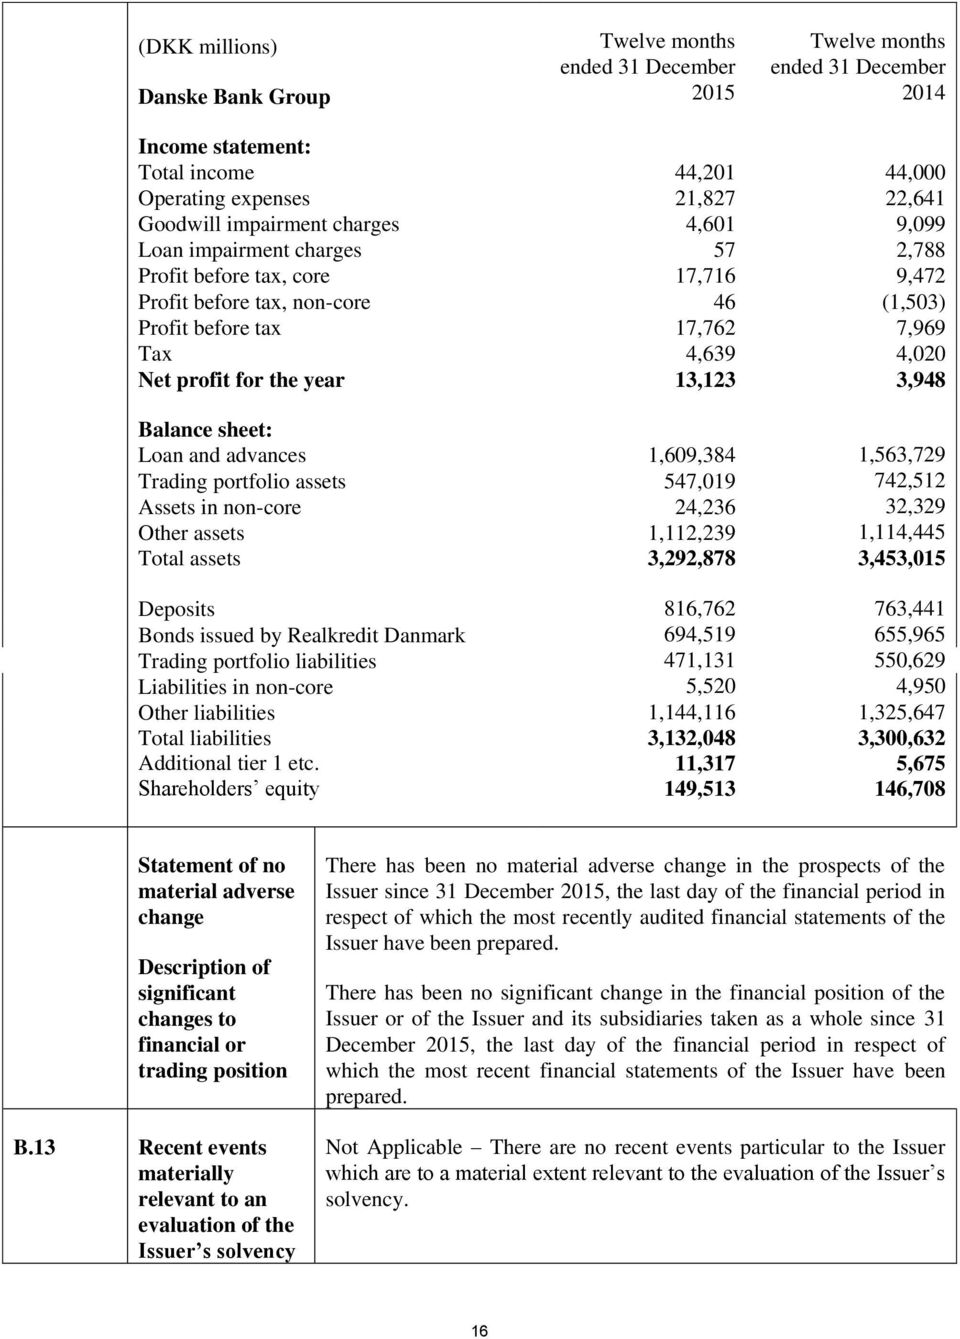 for the year 13,123 3,948 Balance sheet: Loan and advances 1,609,384 1,563,729 Trading portfolio assets 547,019 742,512 Assets in non-core 24,236 32,329 Other assets 1,112,239 1,114,445 Total assets